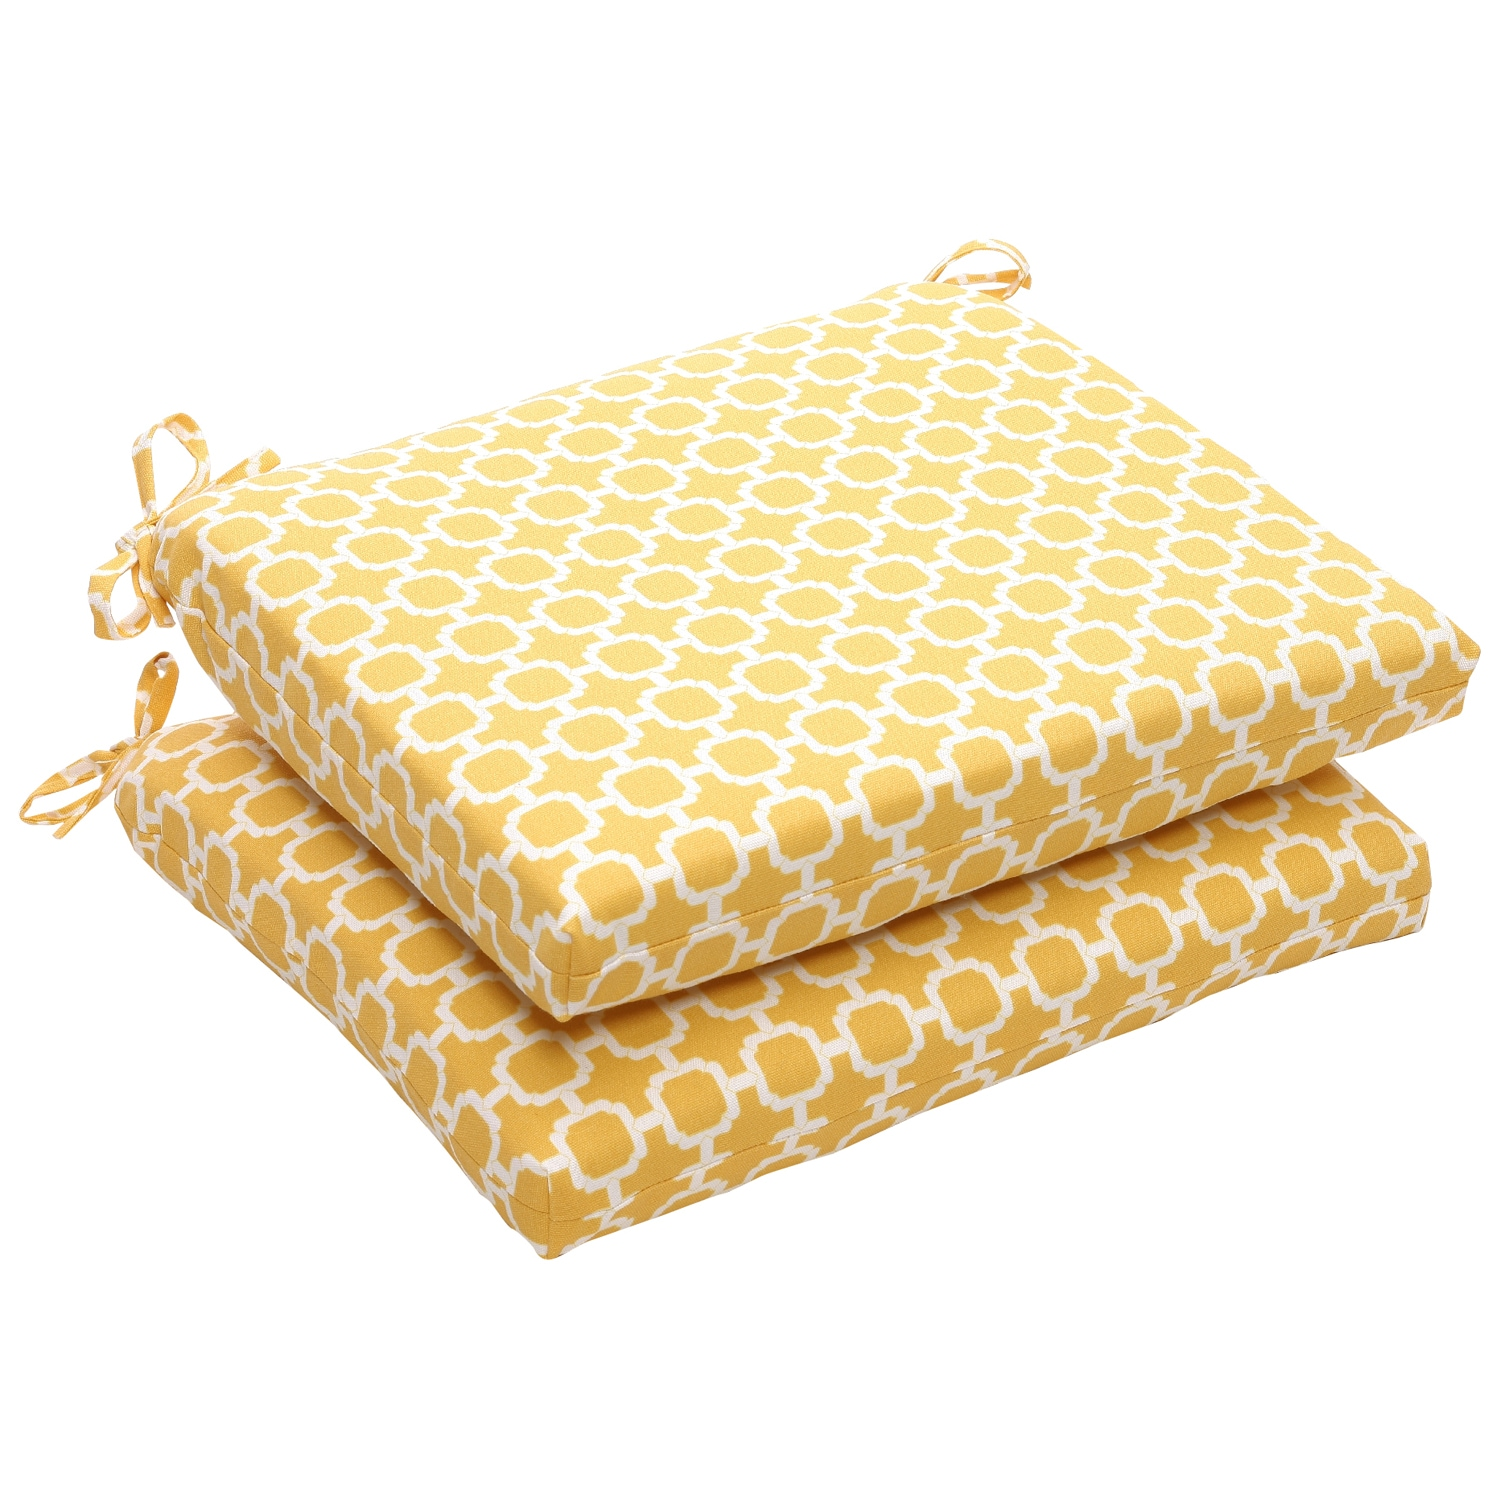 Outdoor Yellow and White Geometric Square Seat Cushion